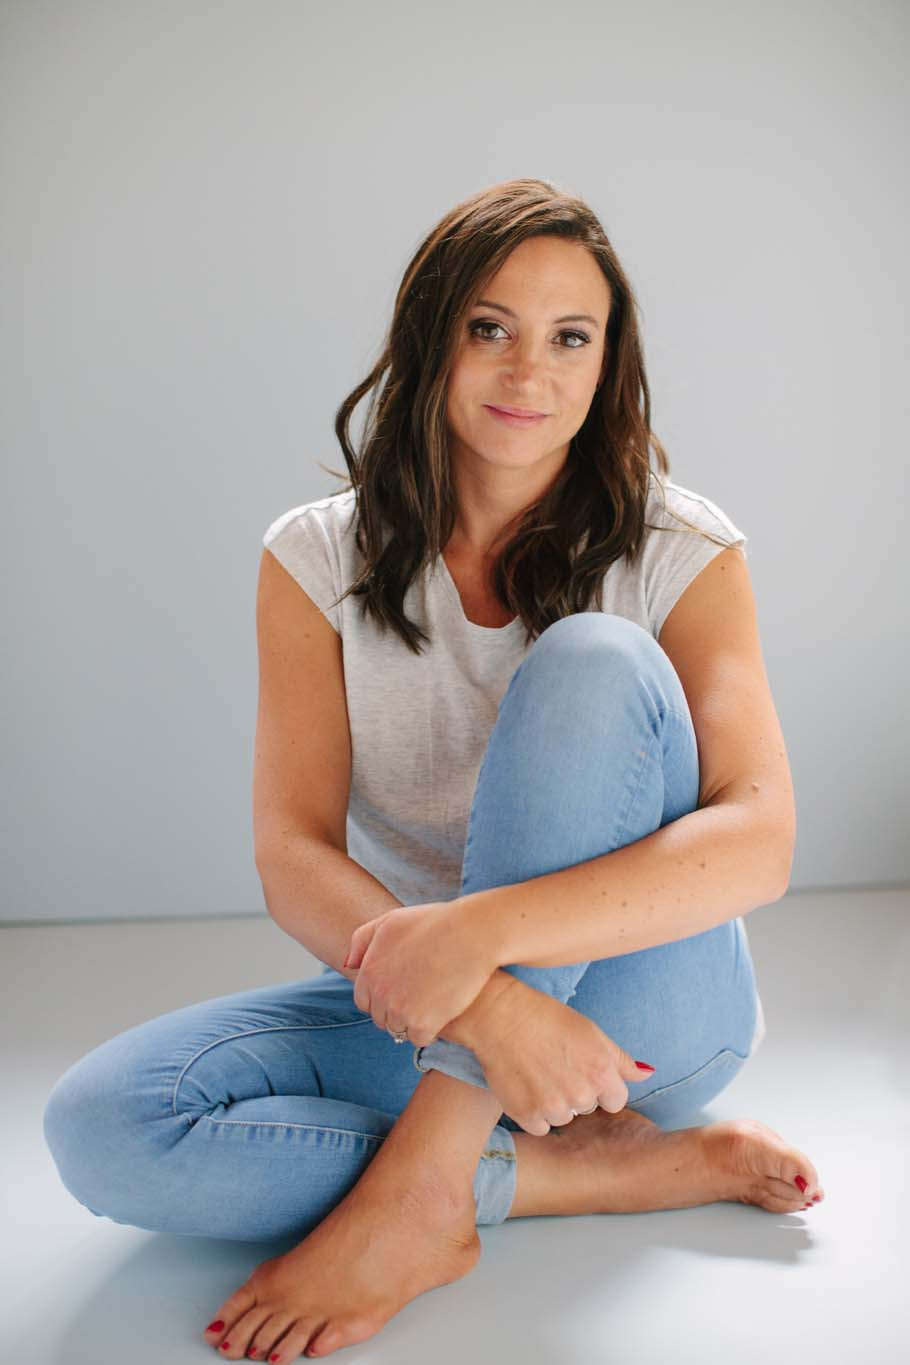 woman sitting in jeans